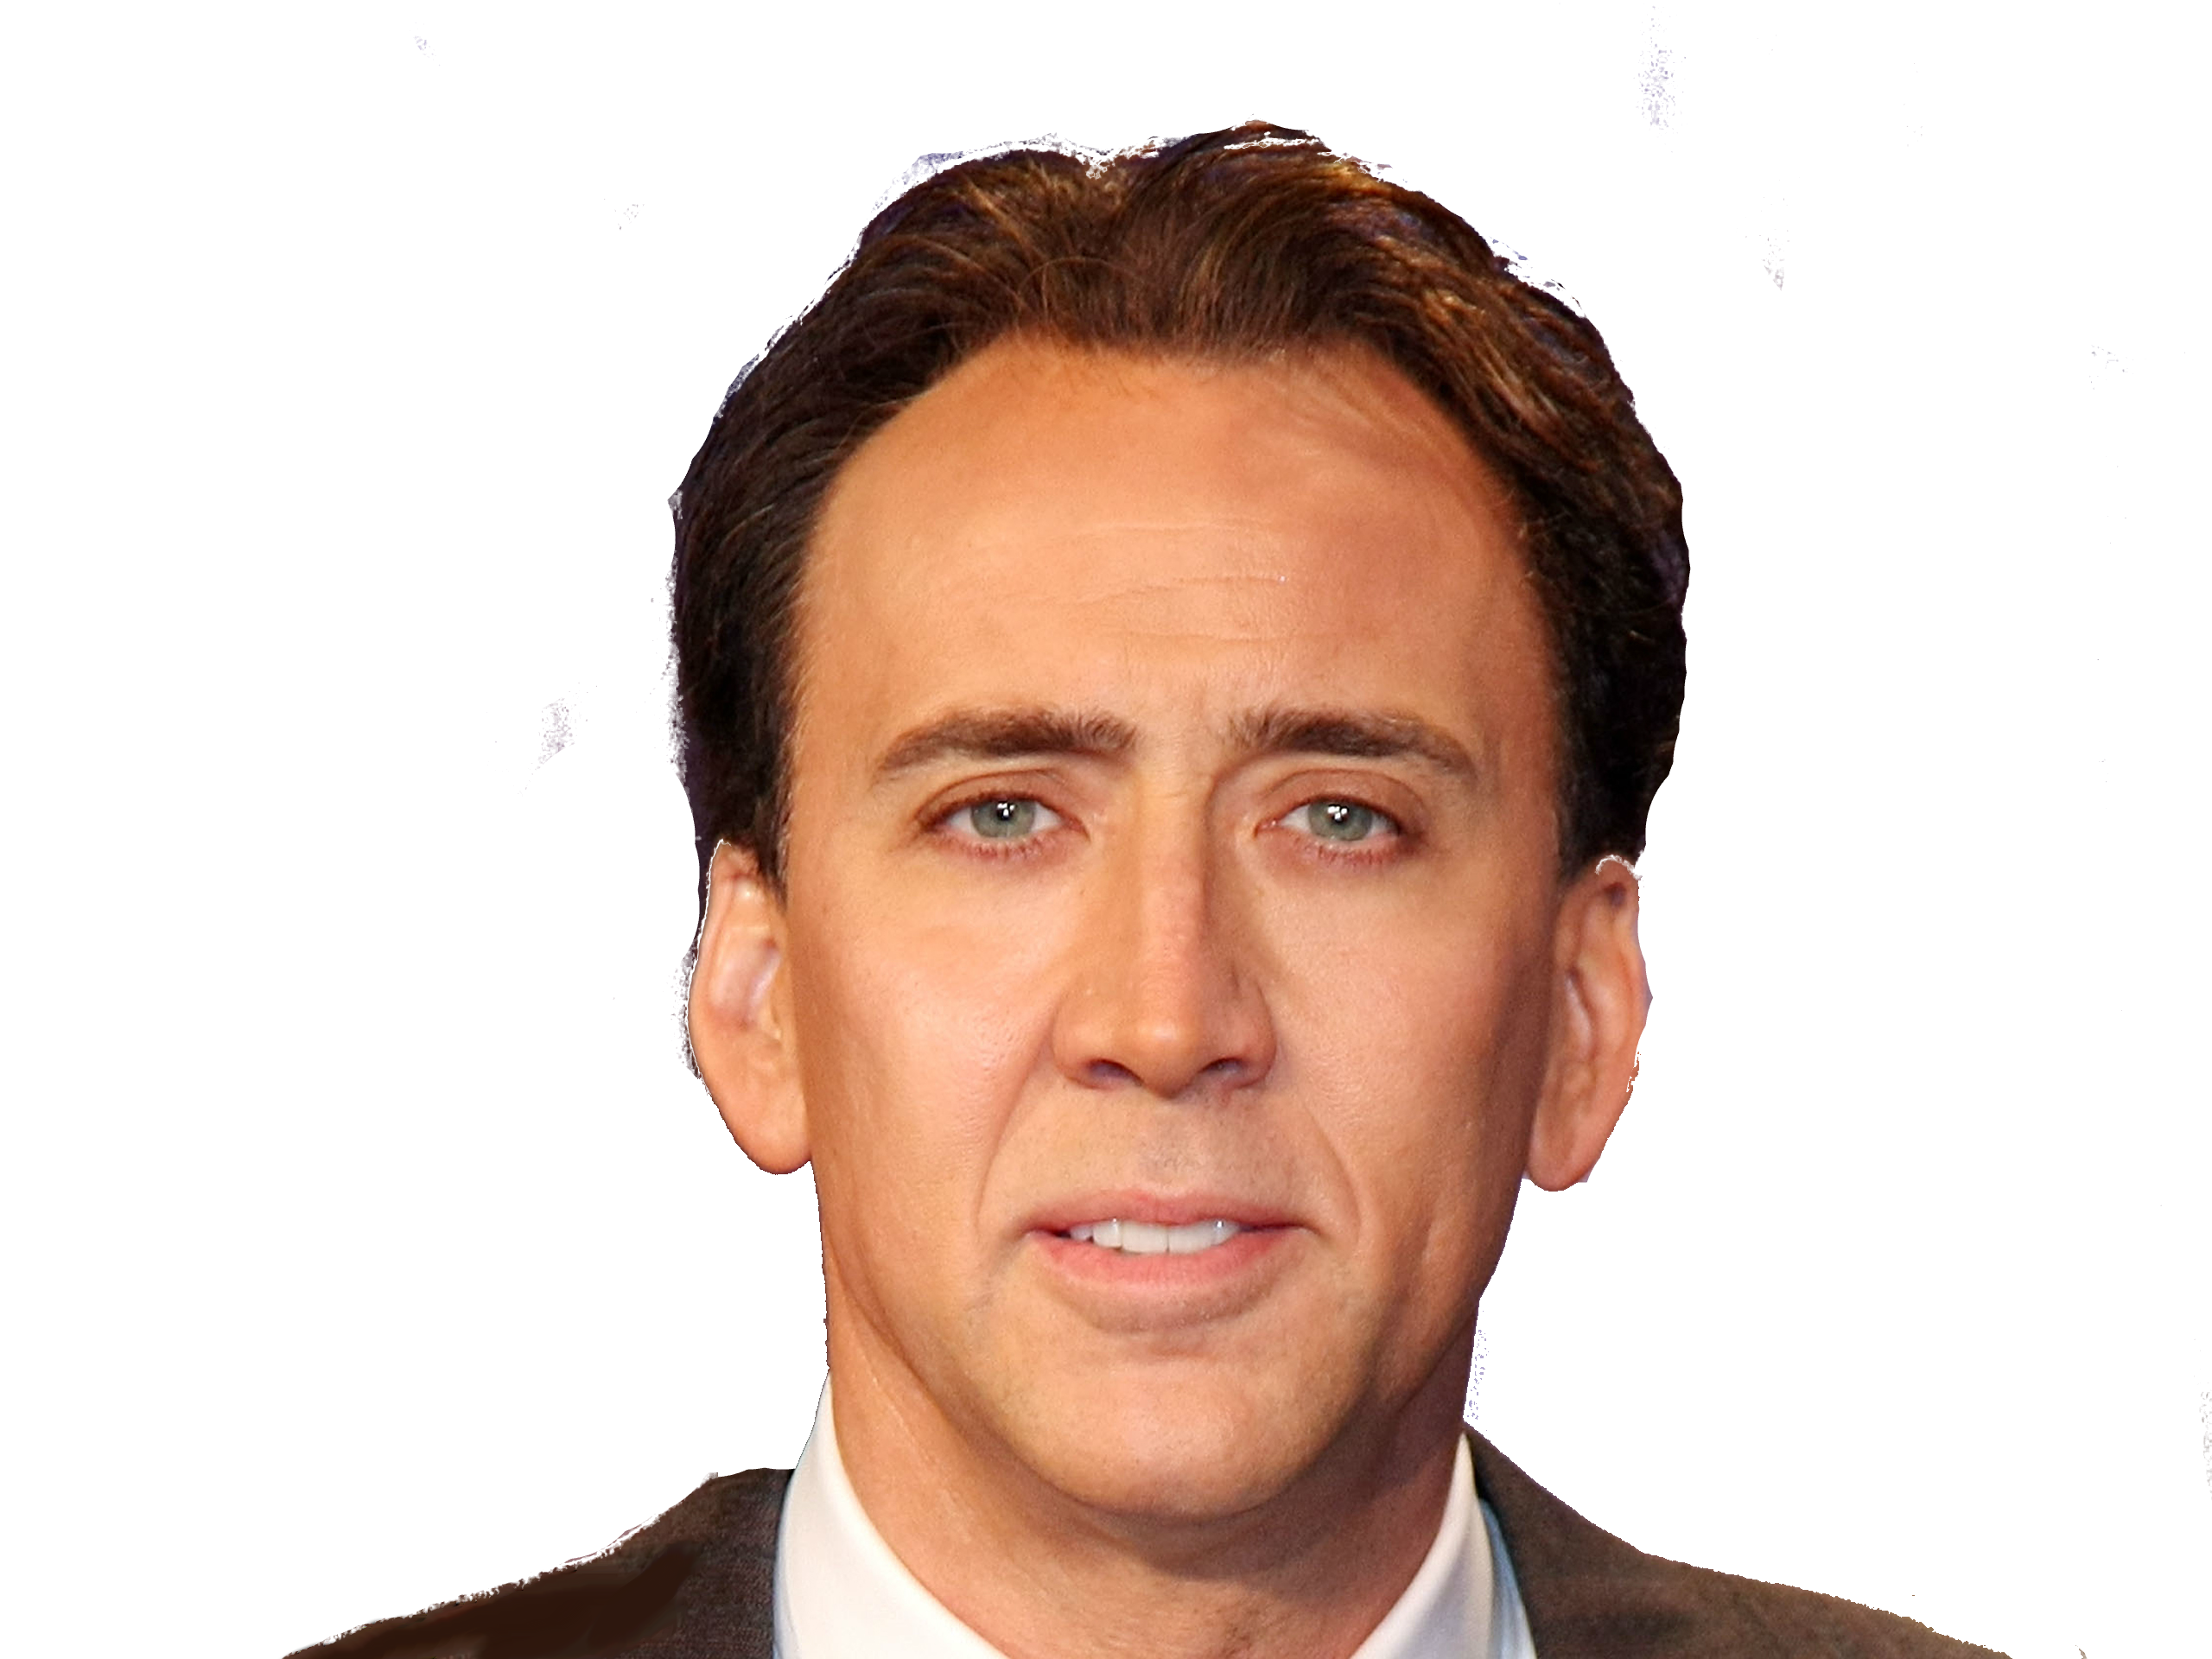 Nicolas cage tumblr png. Have you accepted nicholas